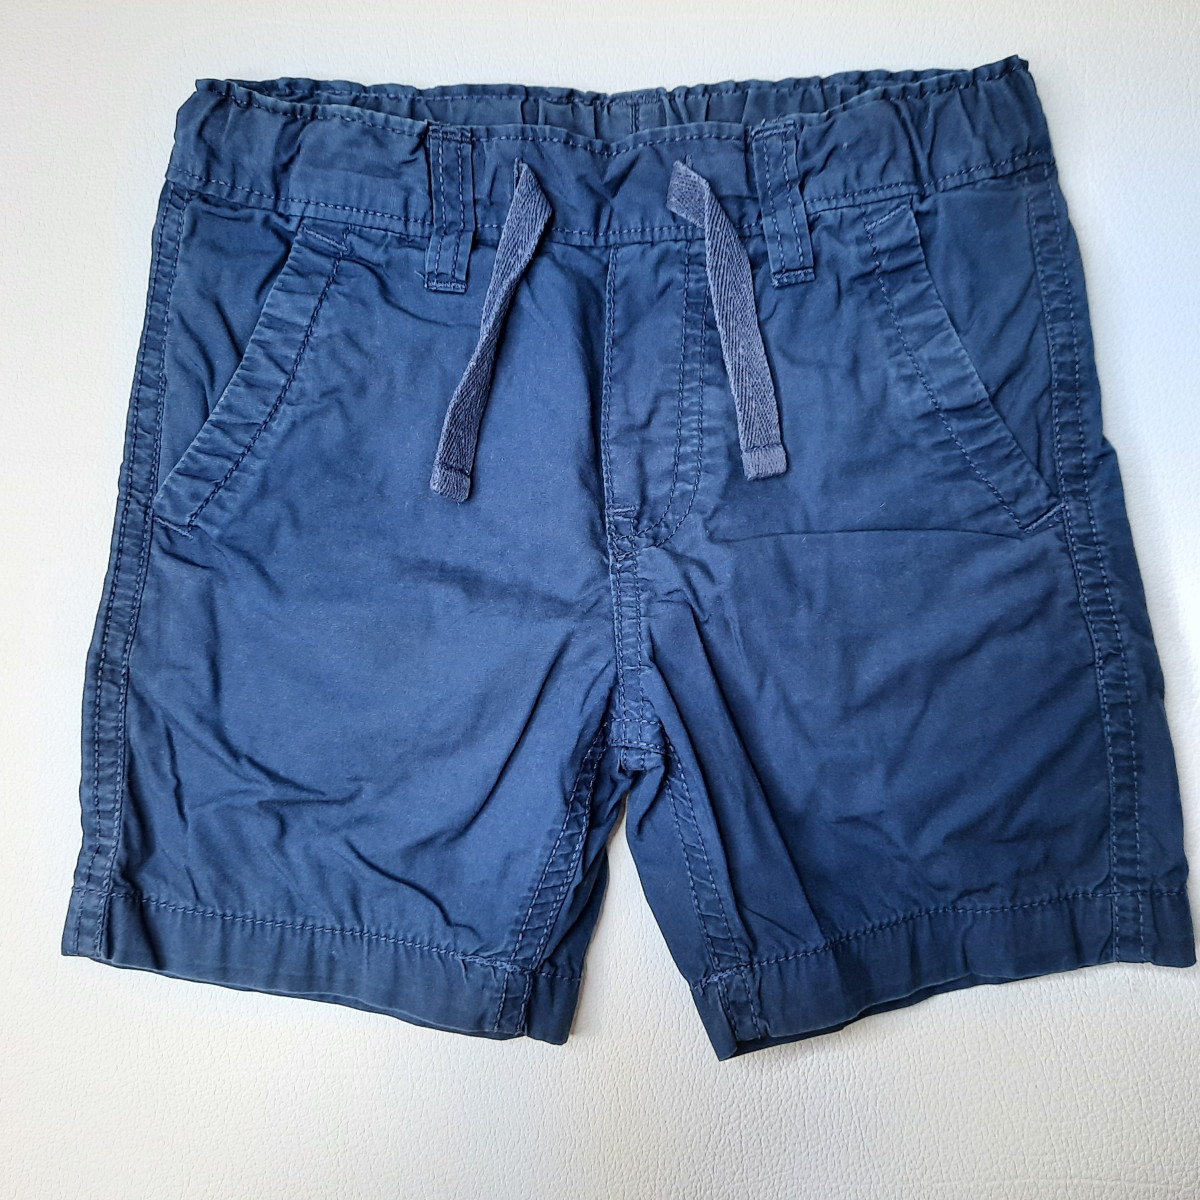 Shorts, Bermudas - photo 29